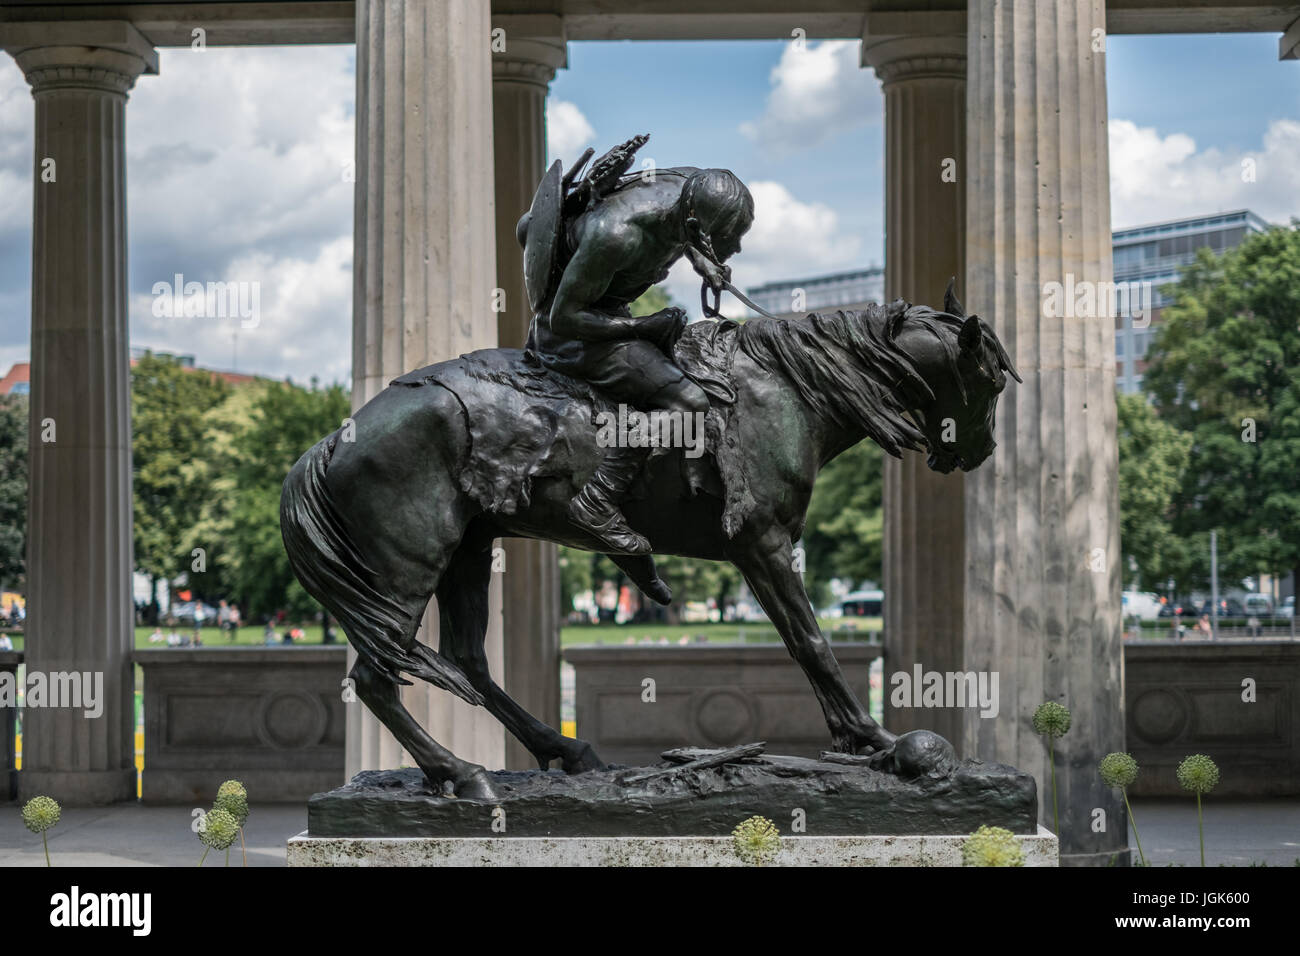 Berlin, Germany - July 06, 2017:Statue of a hun on a horse ('Hunne zu Pferde') at Alte Nationalgalerie Museum - Stock Image